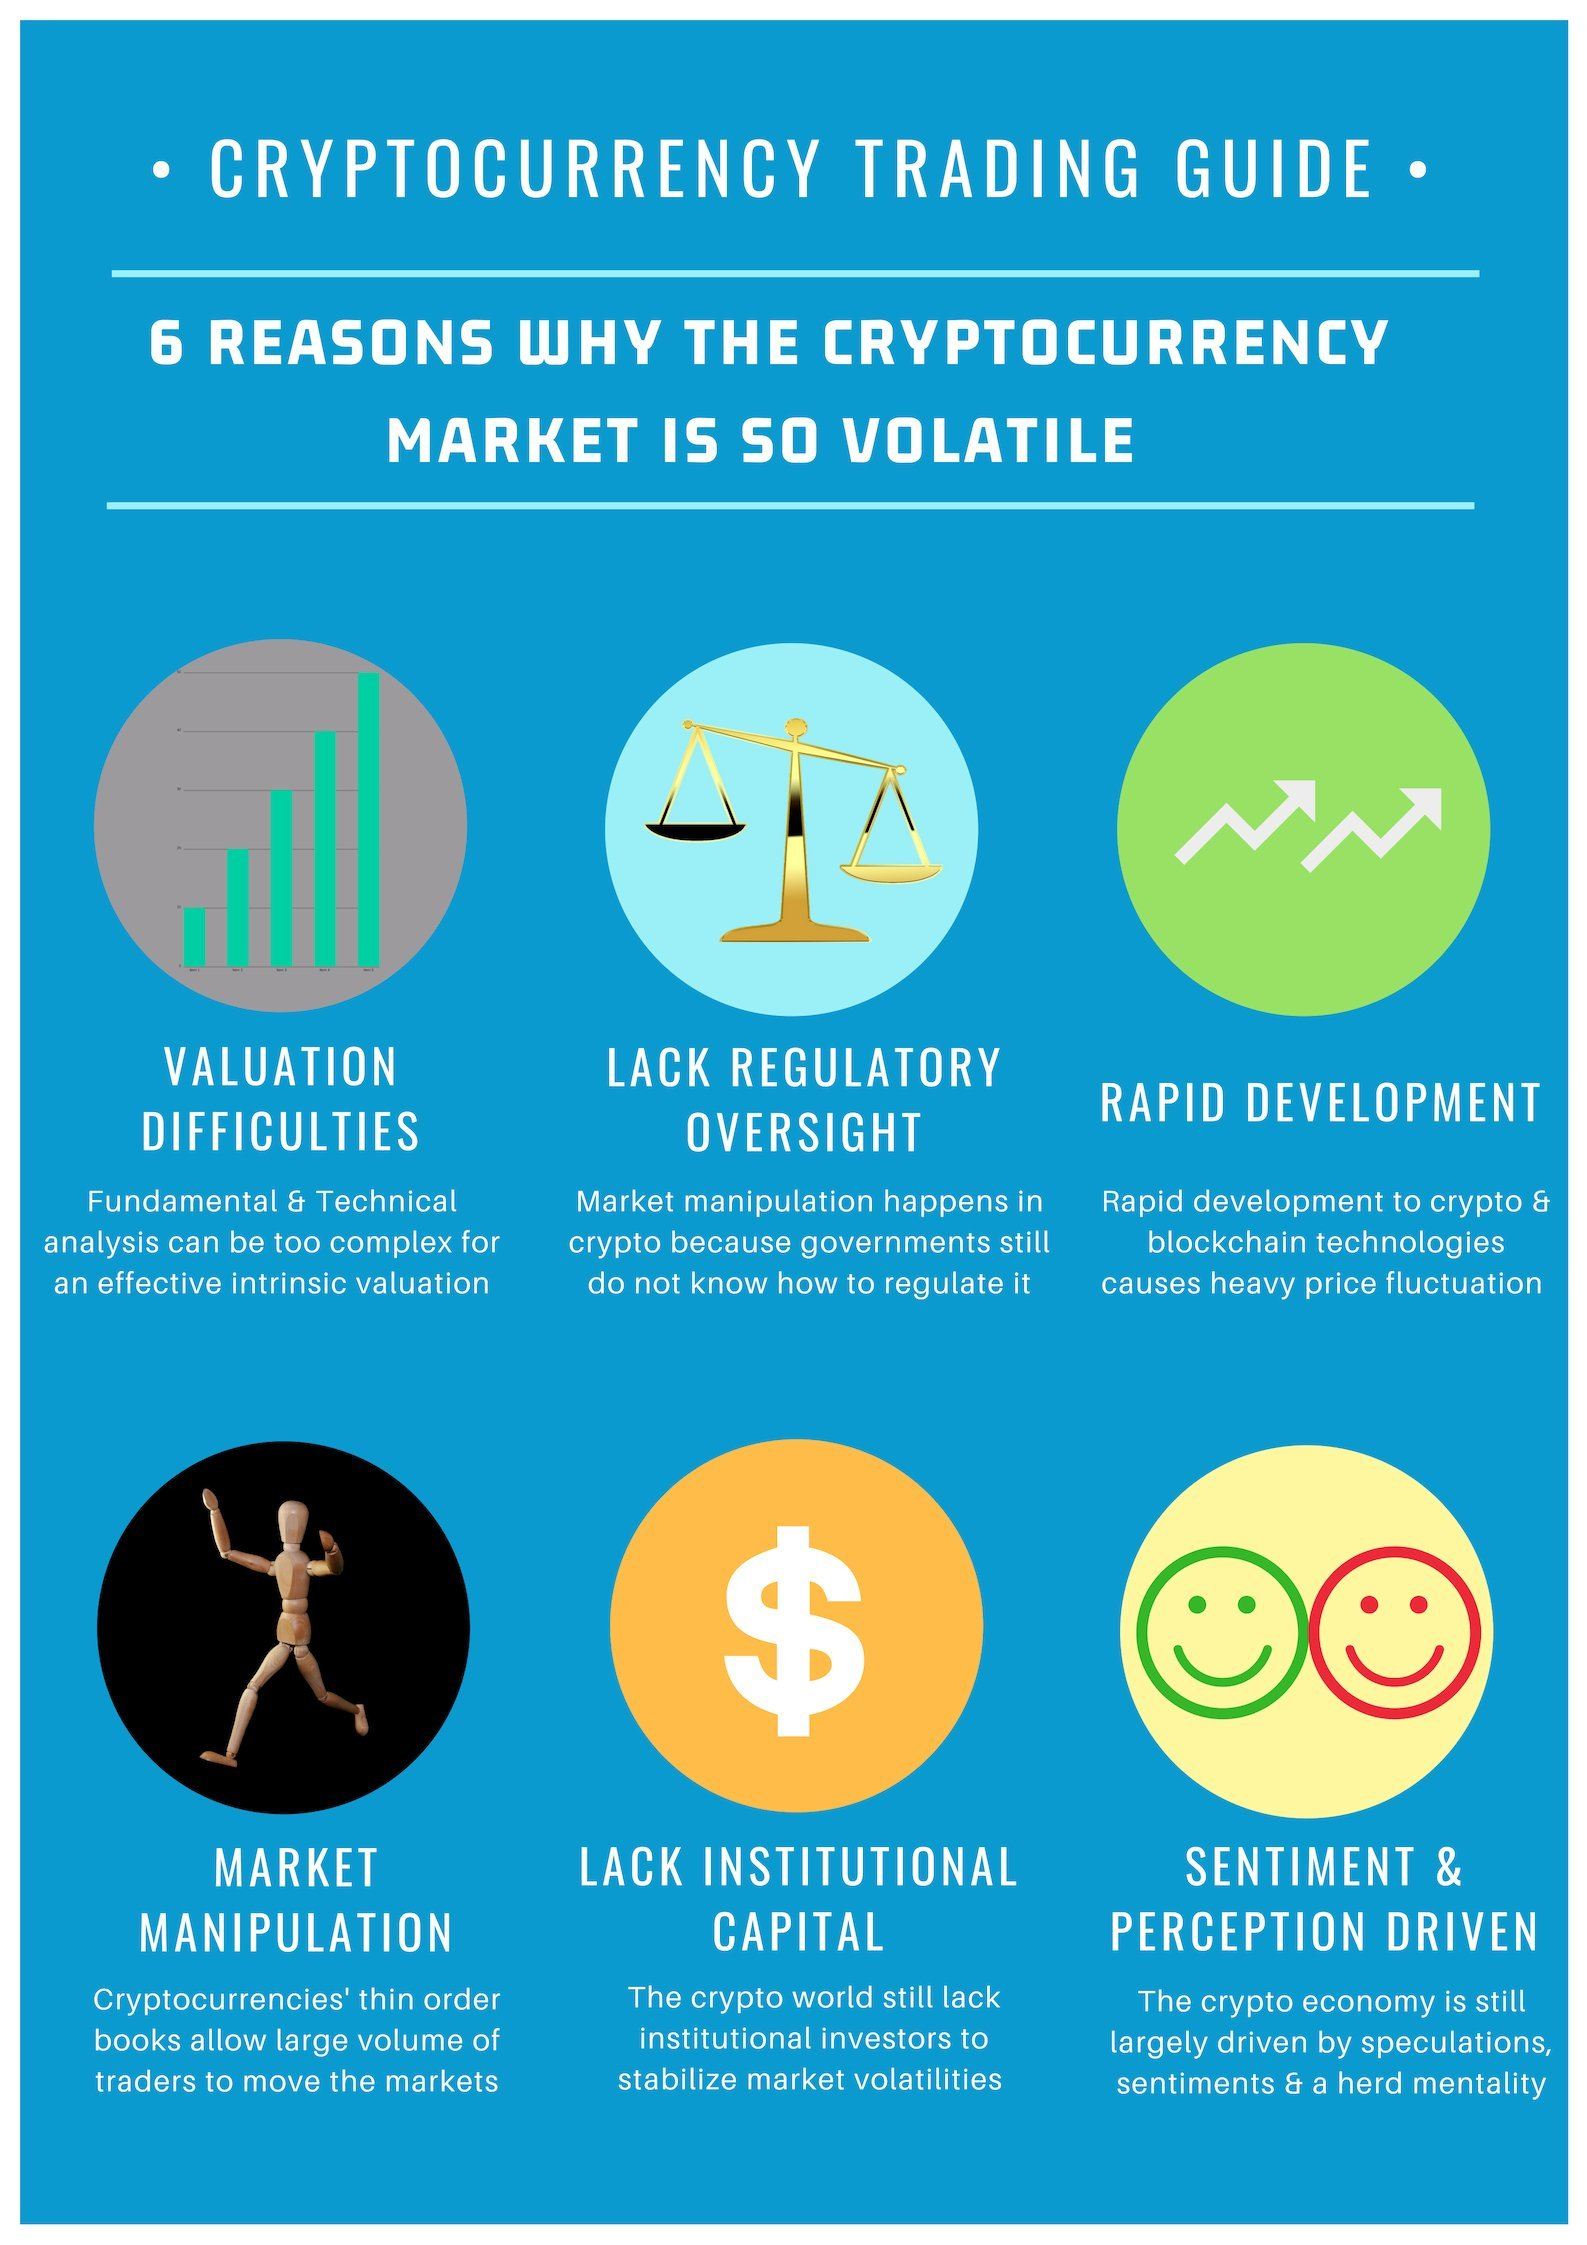 Trading-Guide-4---6-reasons-cryptocurrency-market-volatile